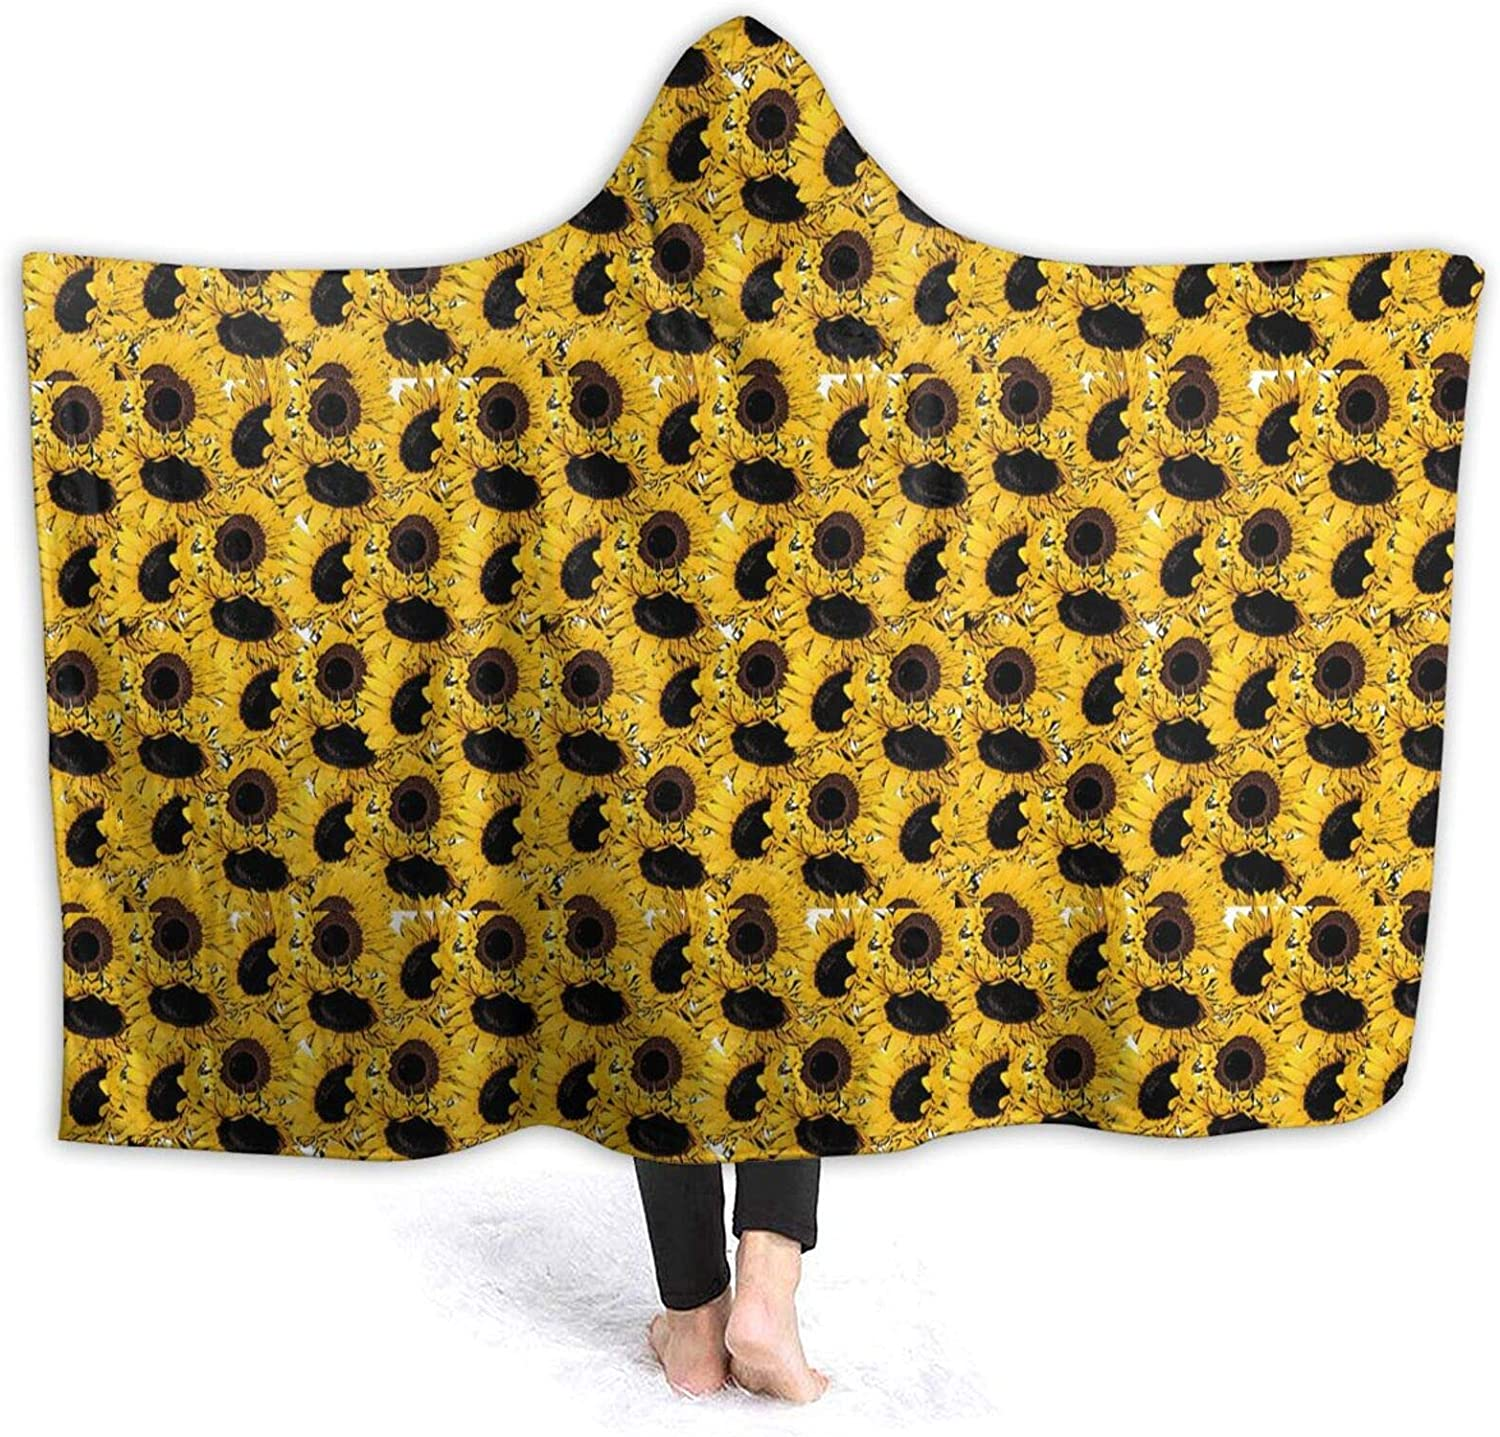 Discount is also underway Yellow Sunflower Wearable New Free Shipping Blanket Stylish Sofa Throw for